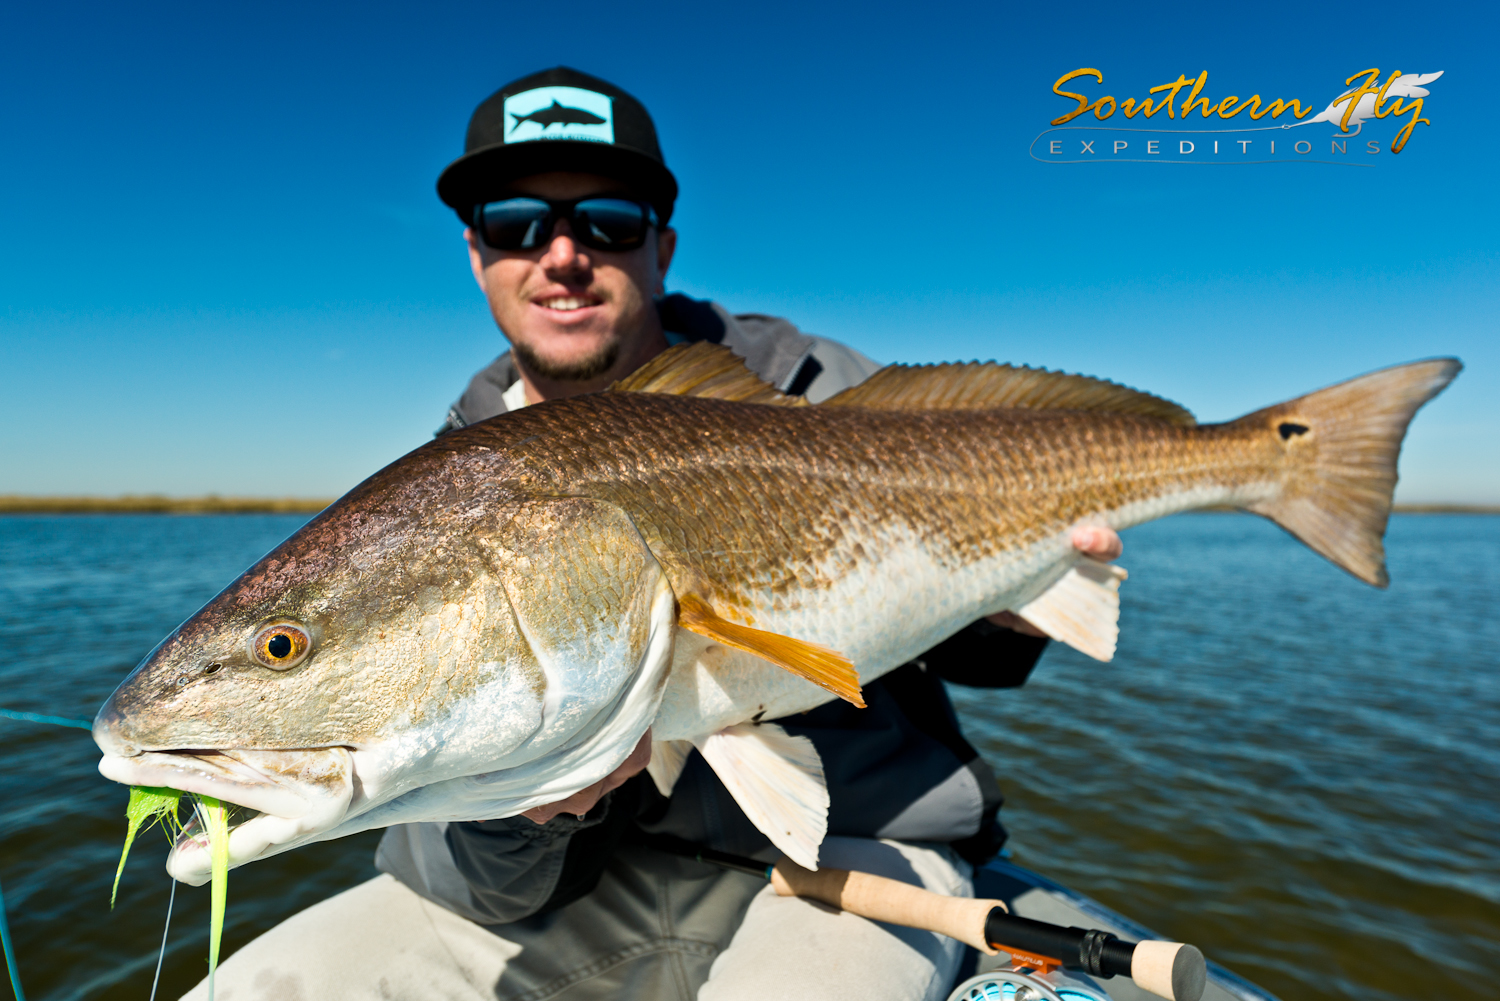 Southern Fly Expeditions A New Orleans Fly Fishing Guide